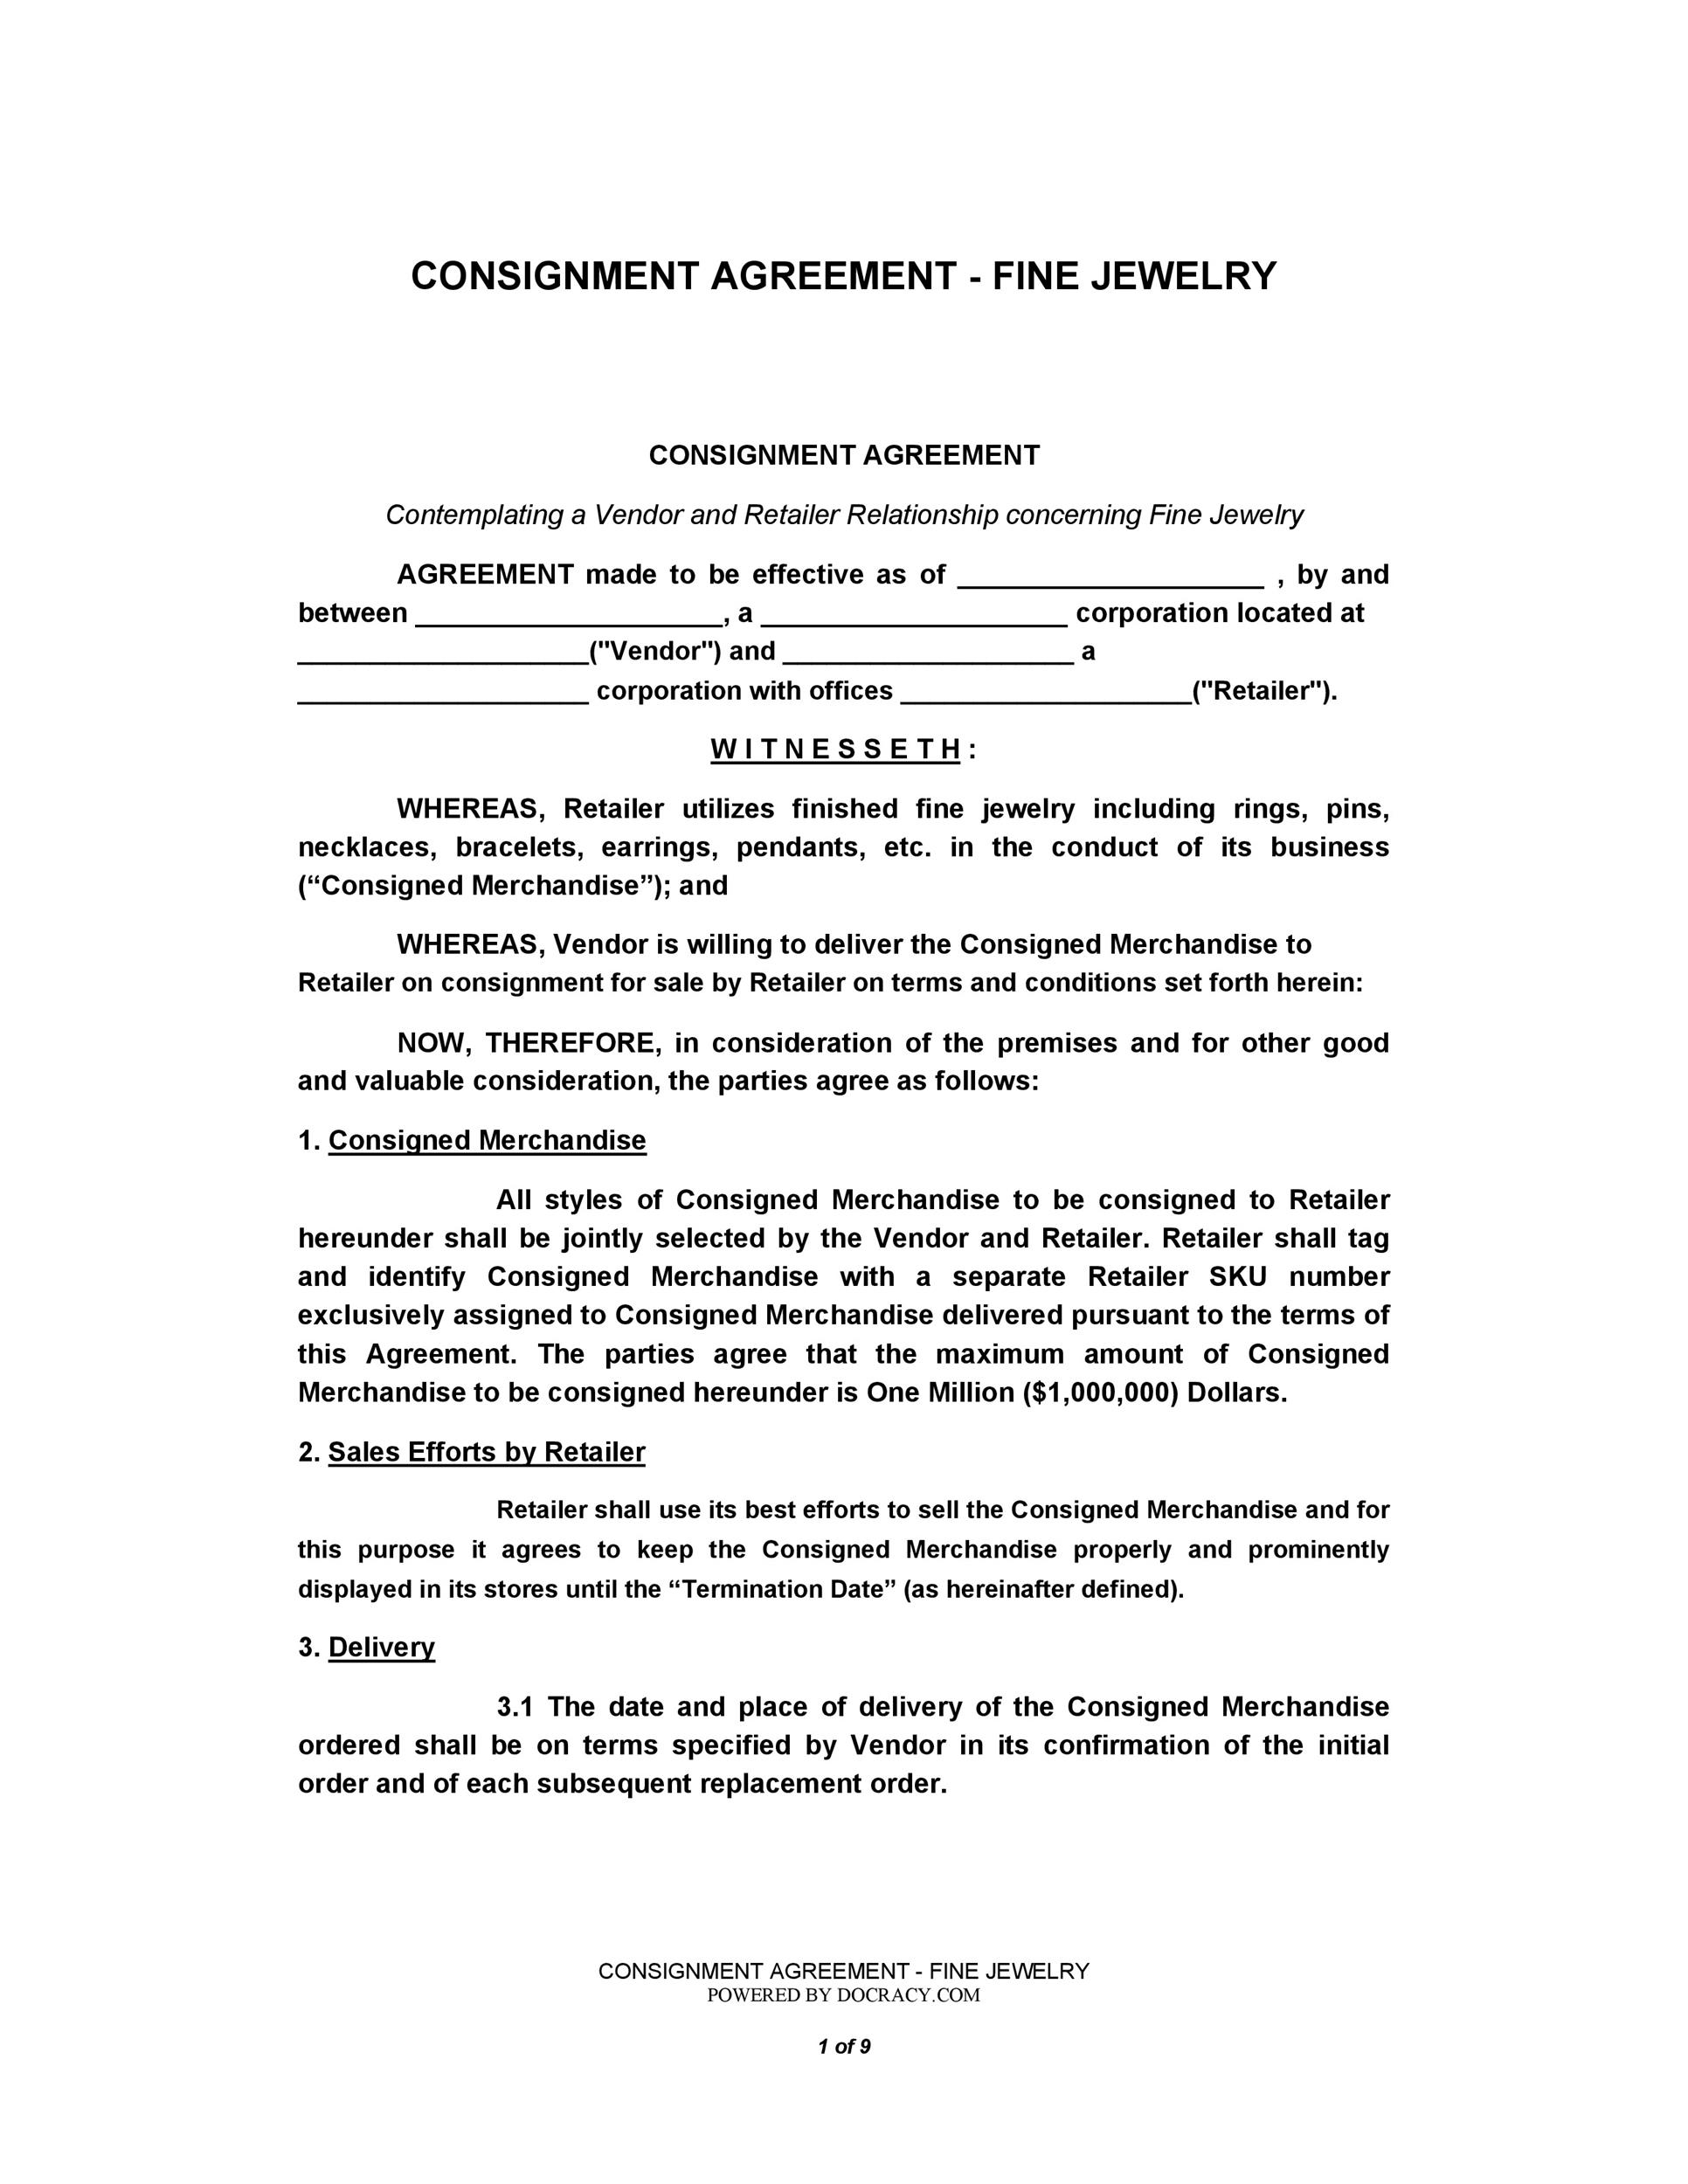 40+ Best Consignment Agreement Templates & Forms - Template Lab